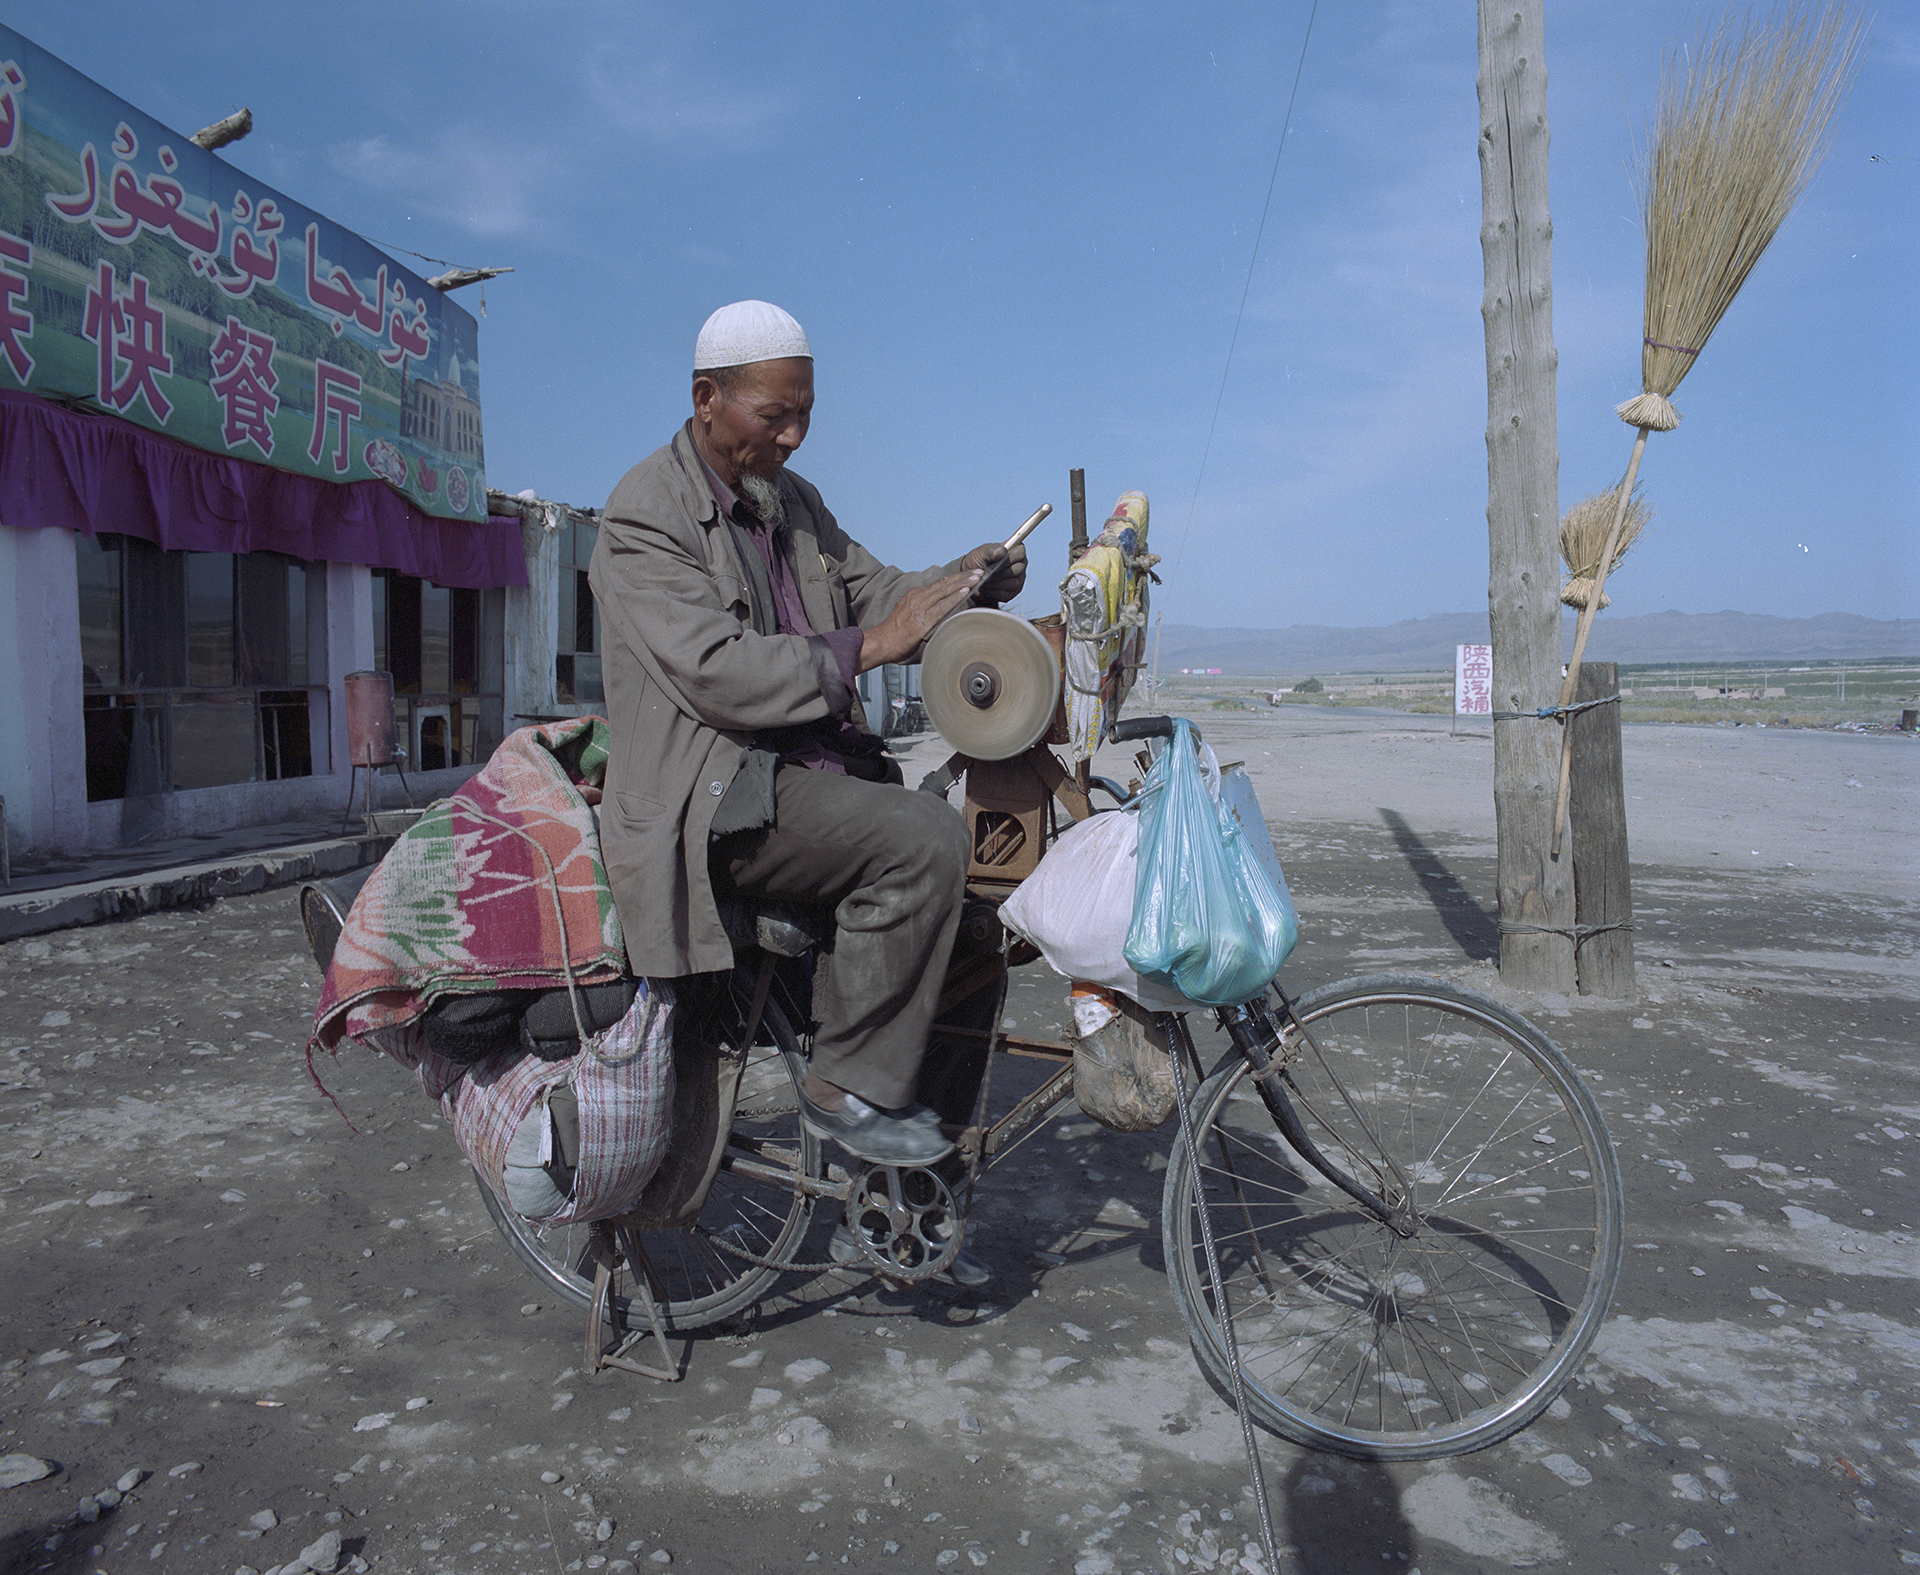 2007 Xinjiang - mobile knife-grinder along the road.